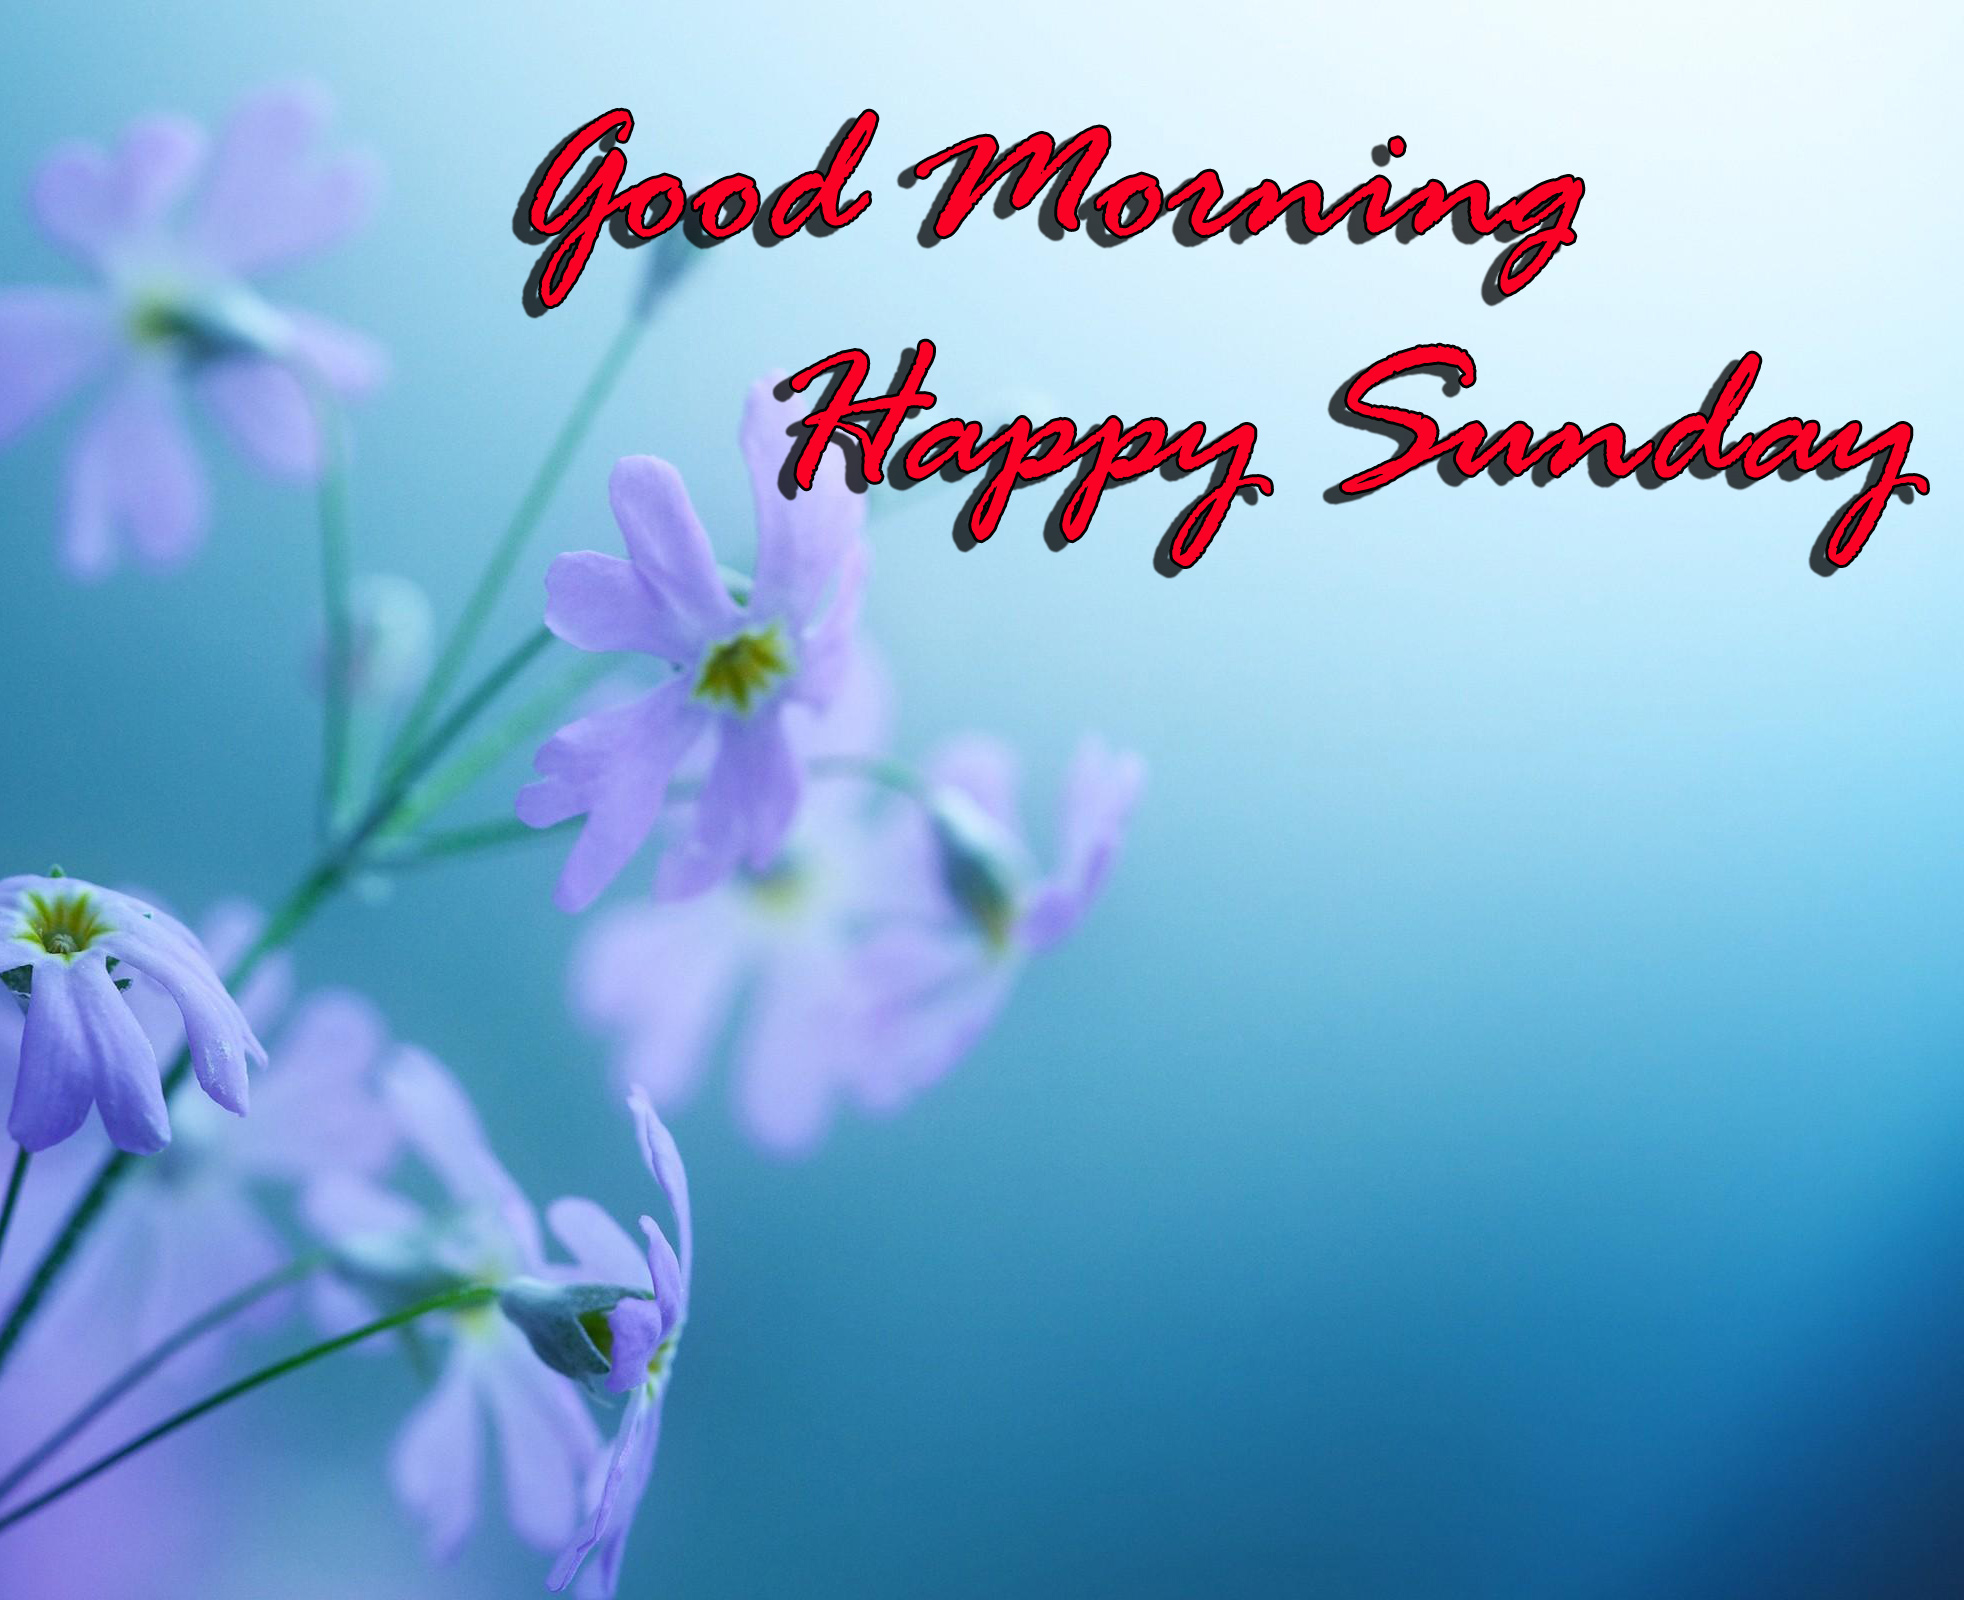 Sunday Good Morning Images photo Pics Download